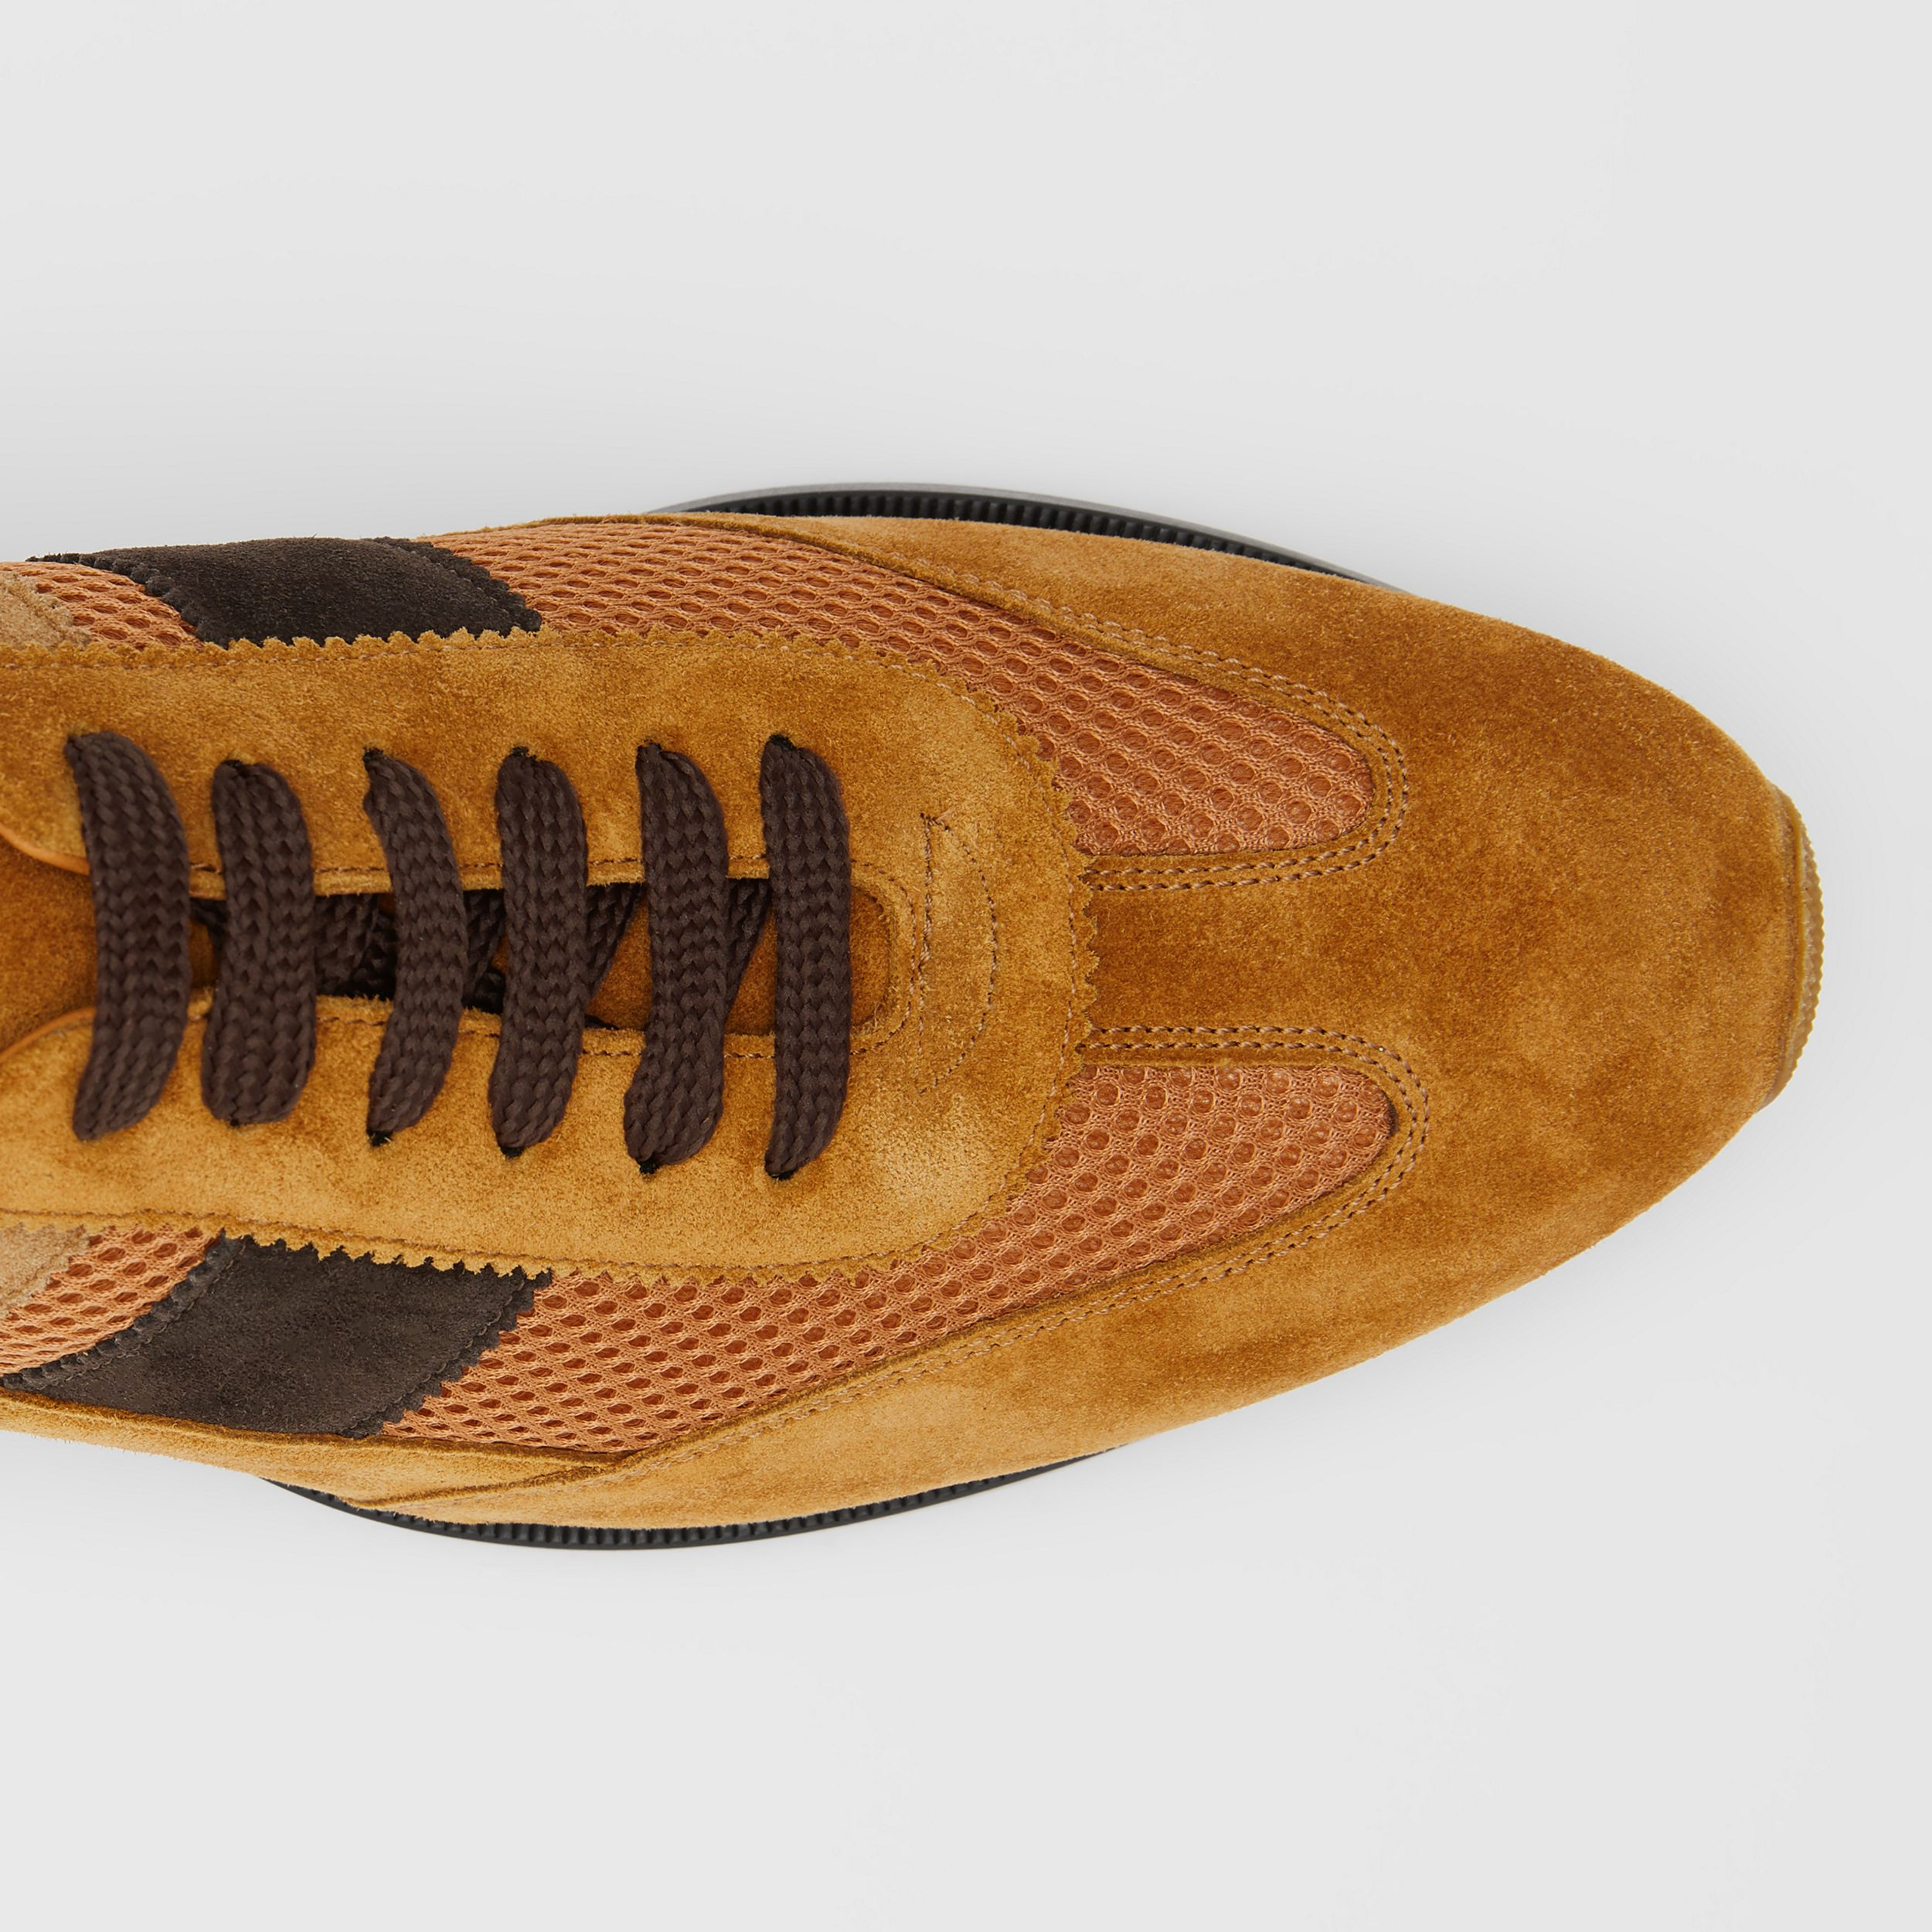 Mesh Panel Suede Lace-up Shoes in Mix Tan | Burberry - 2